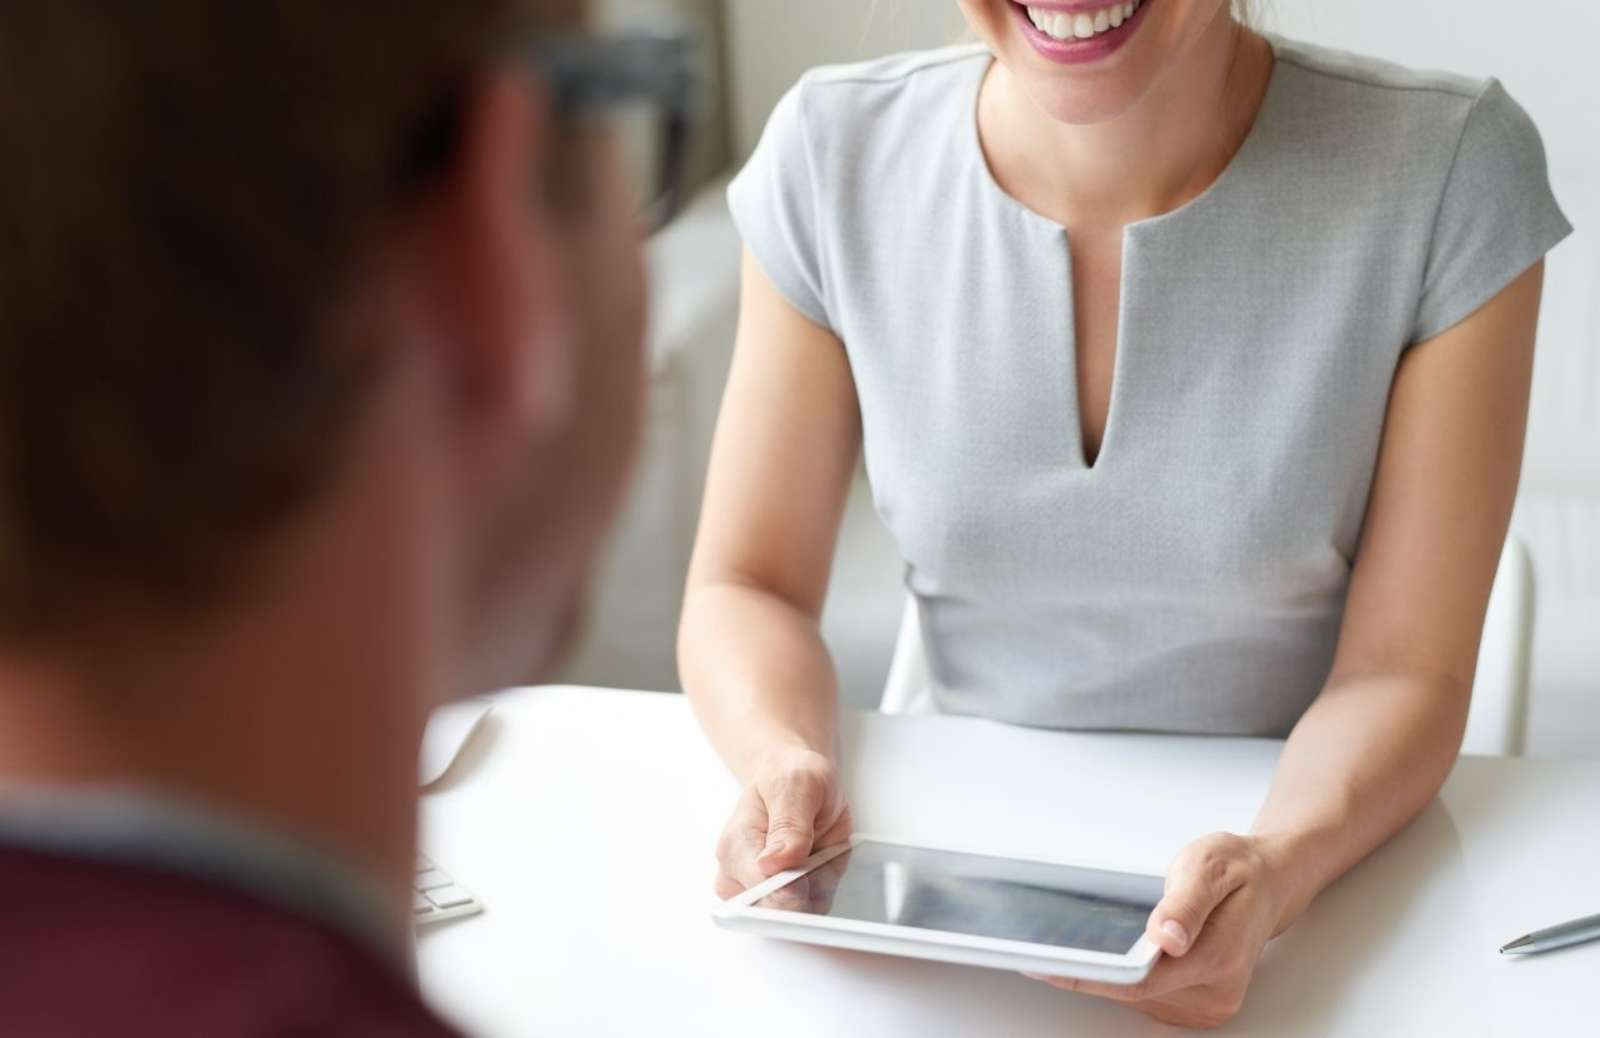 Woman holding tablet sitting across desk from man